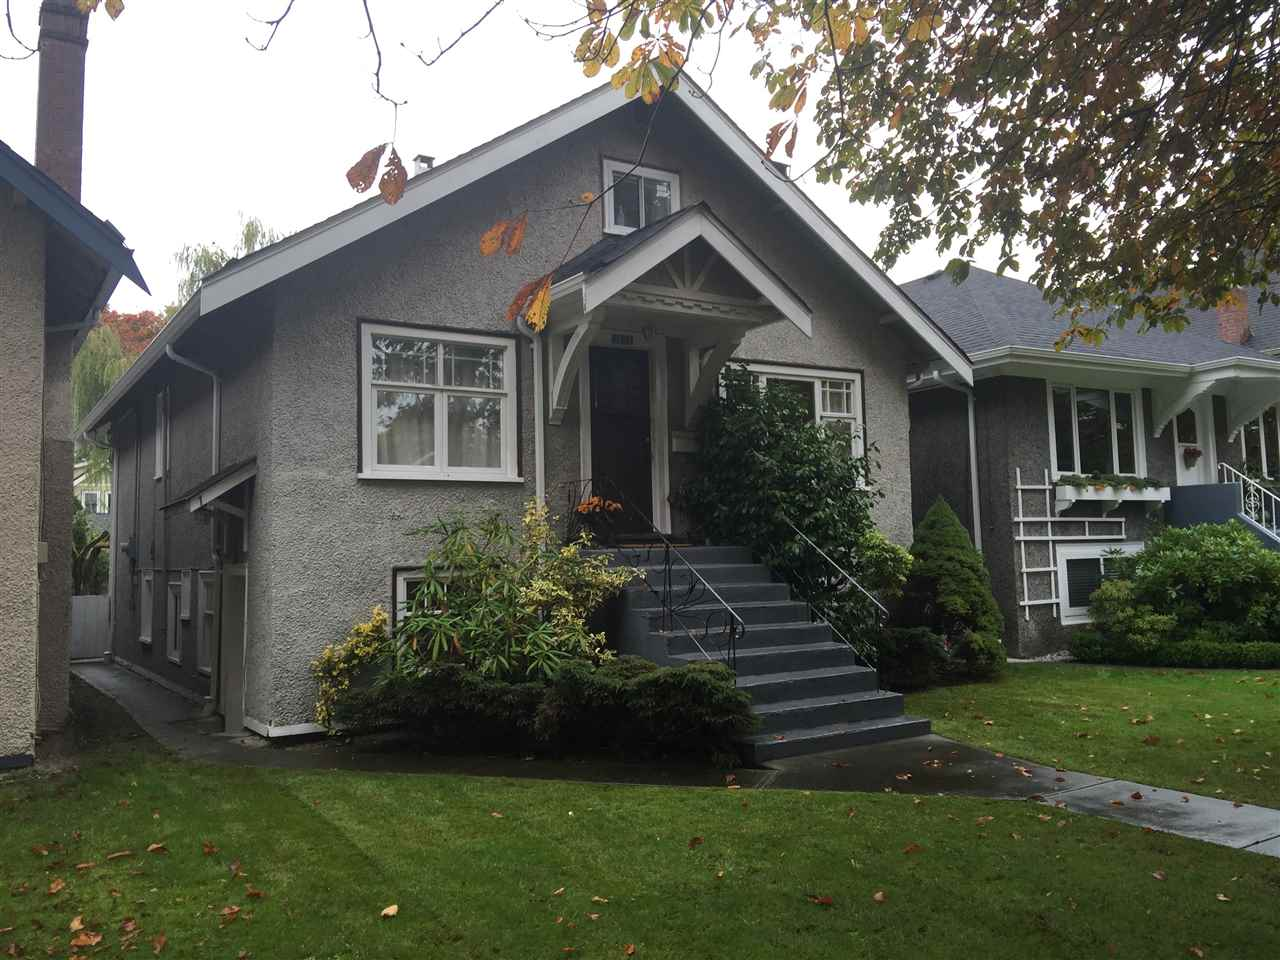 Photo 1: 3233 W 14TH AVENUE in Vancouver: Kitsilano House for sale (Vancouver West)  : MLS® # R2007422